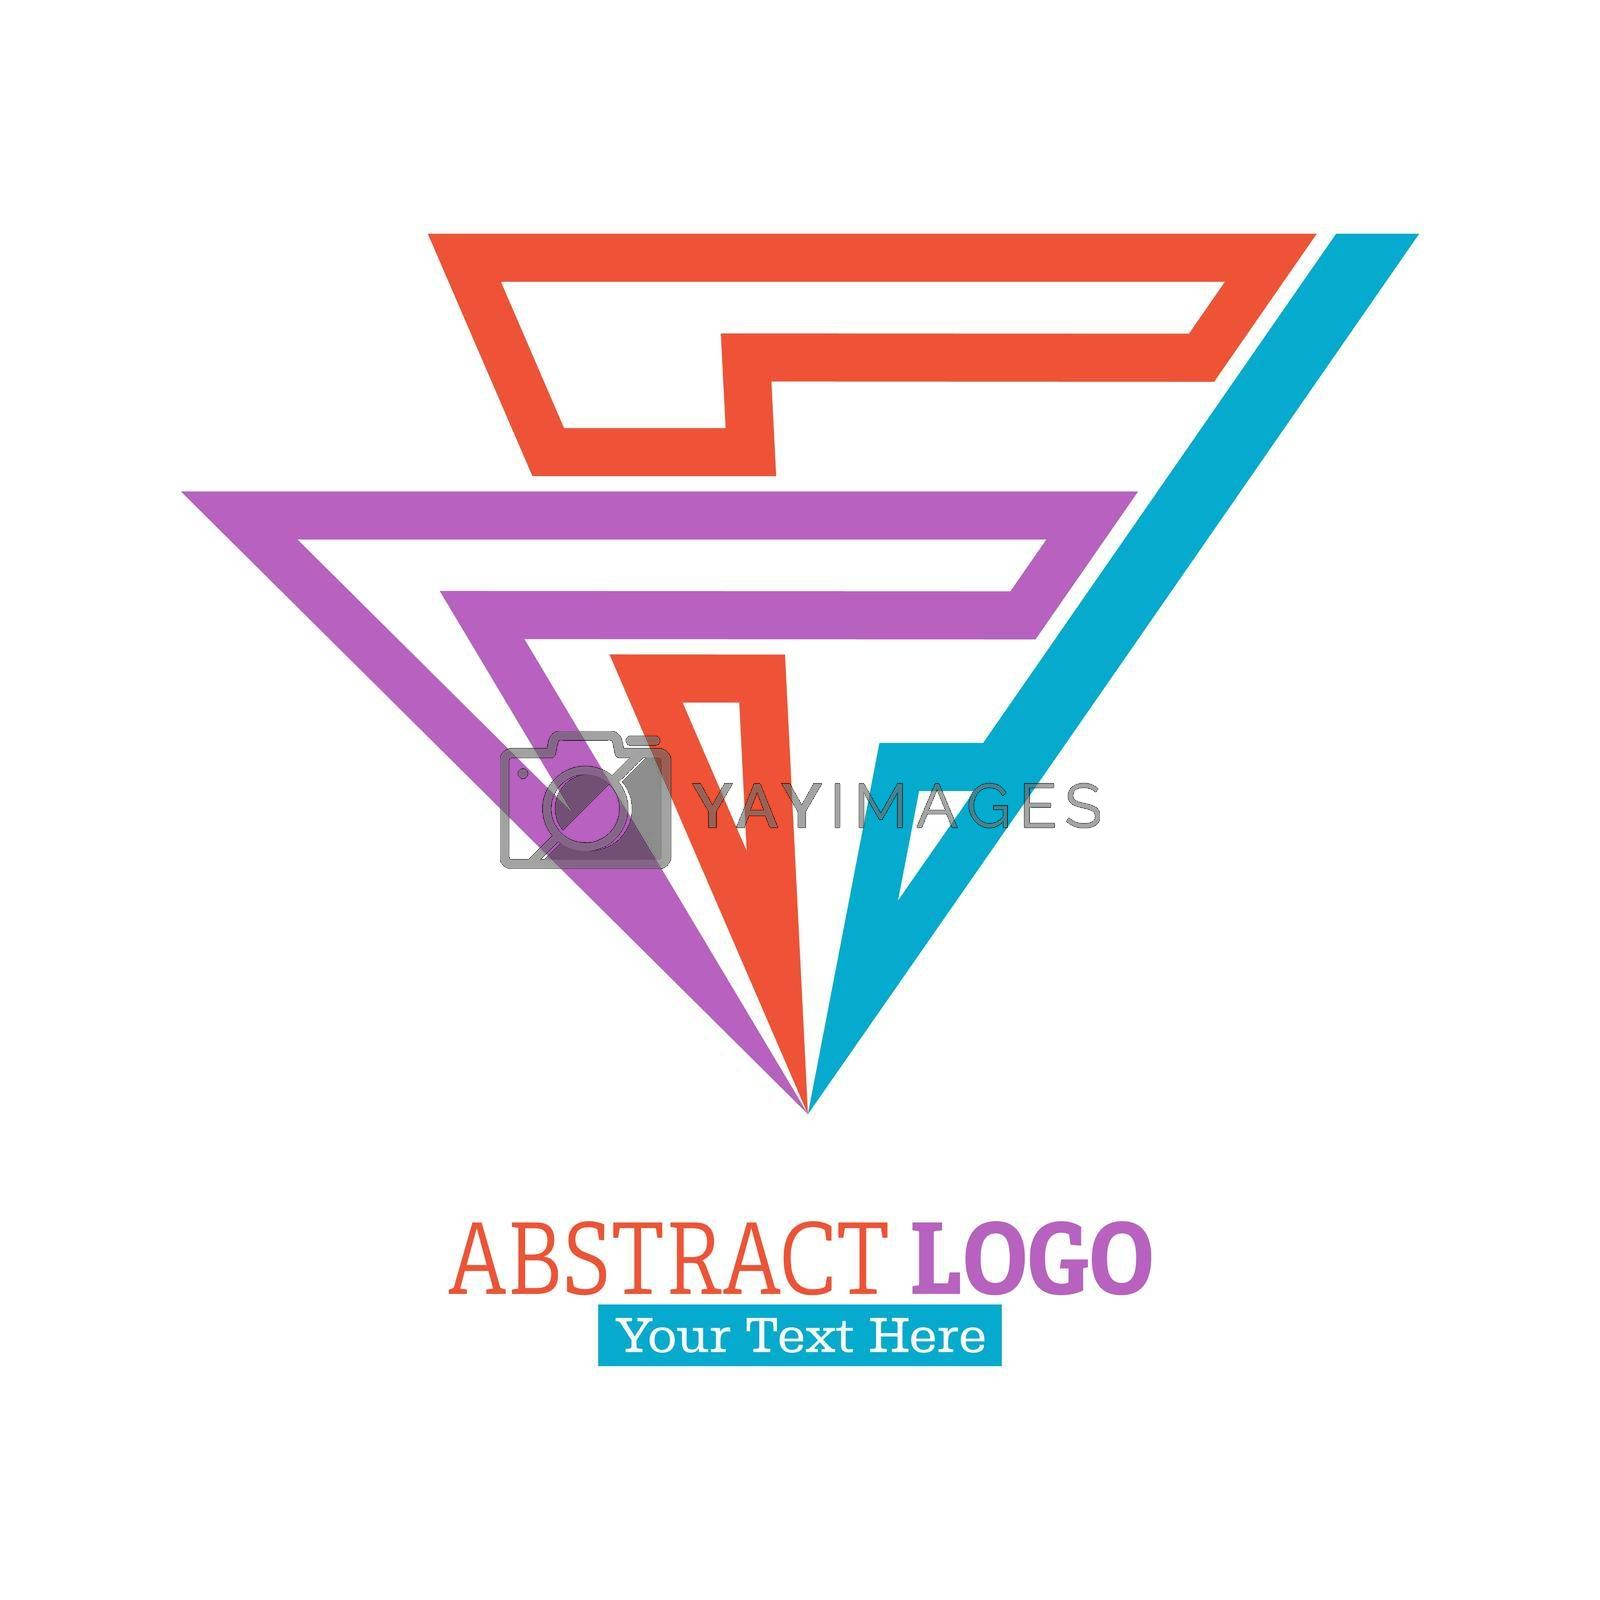 Abstract color logo. Vector illustration for a logo, brand, sticker, or logo isolated on a white background